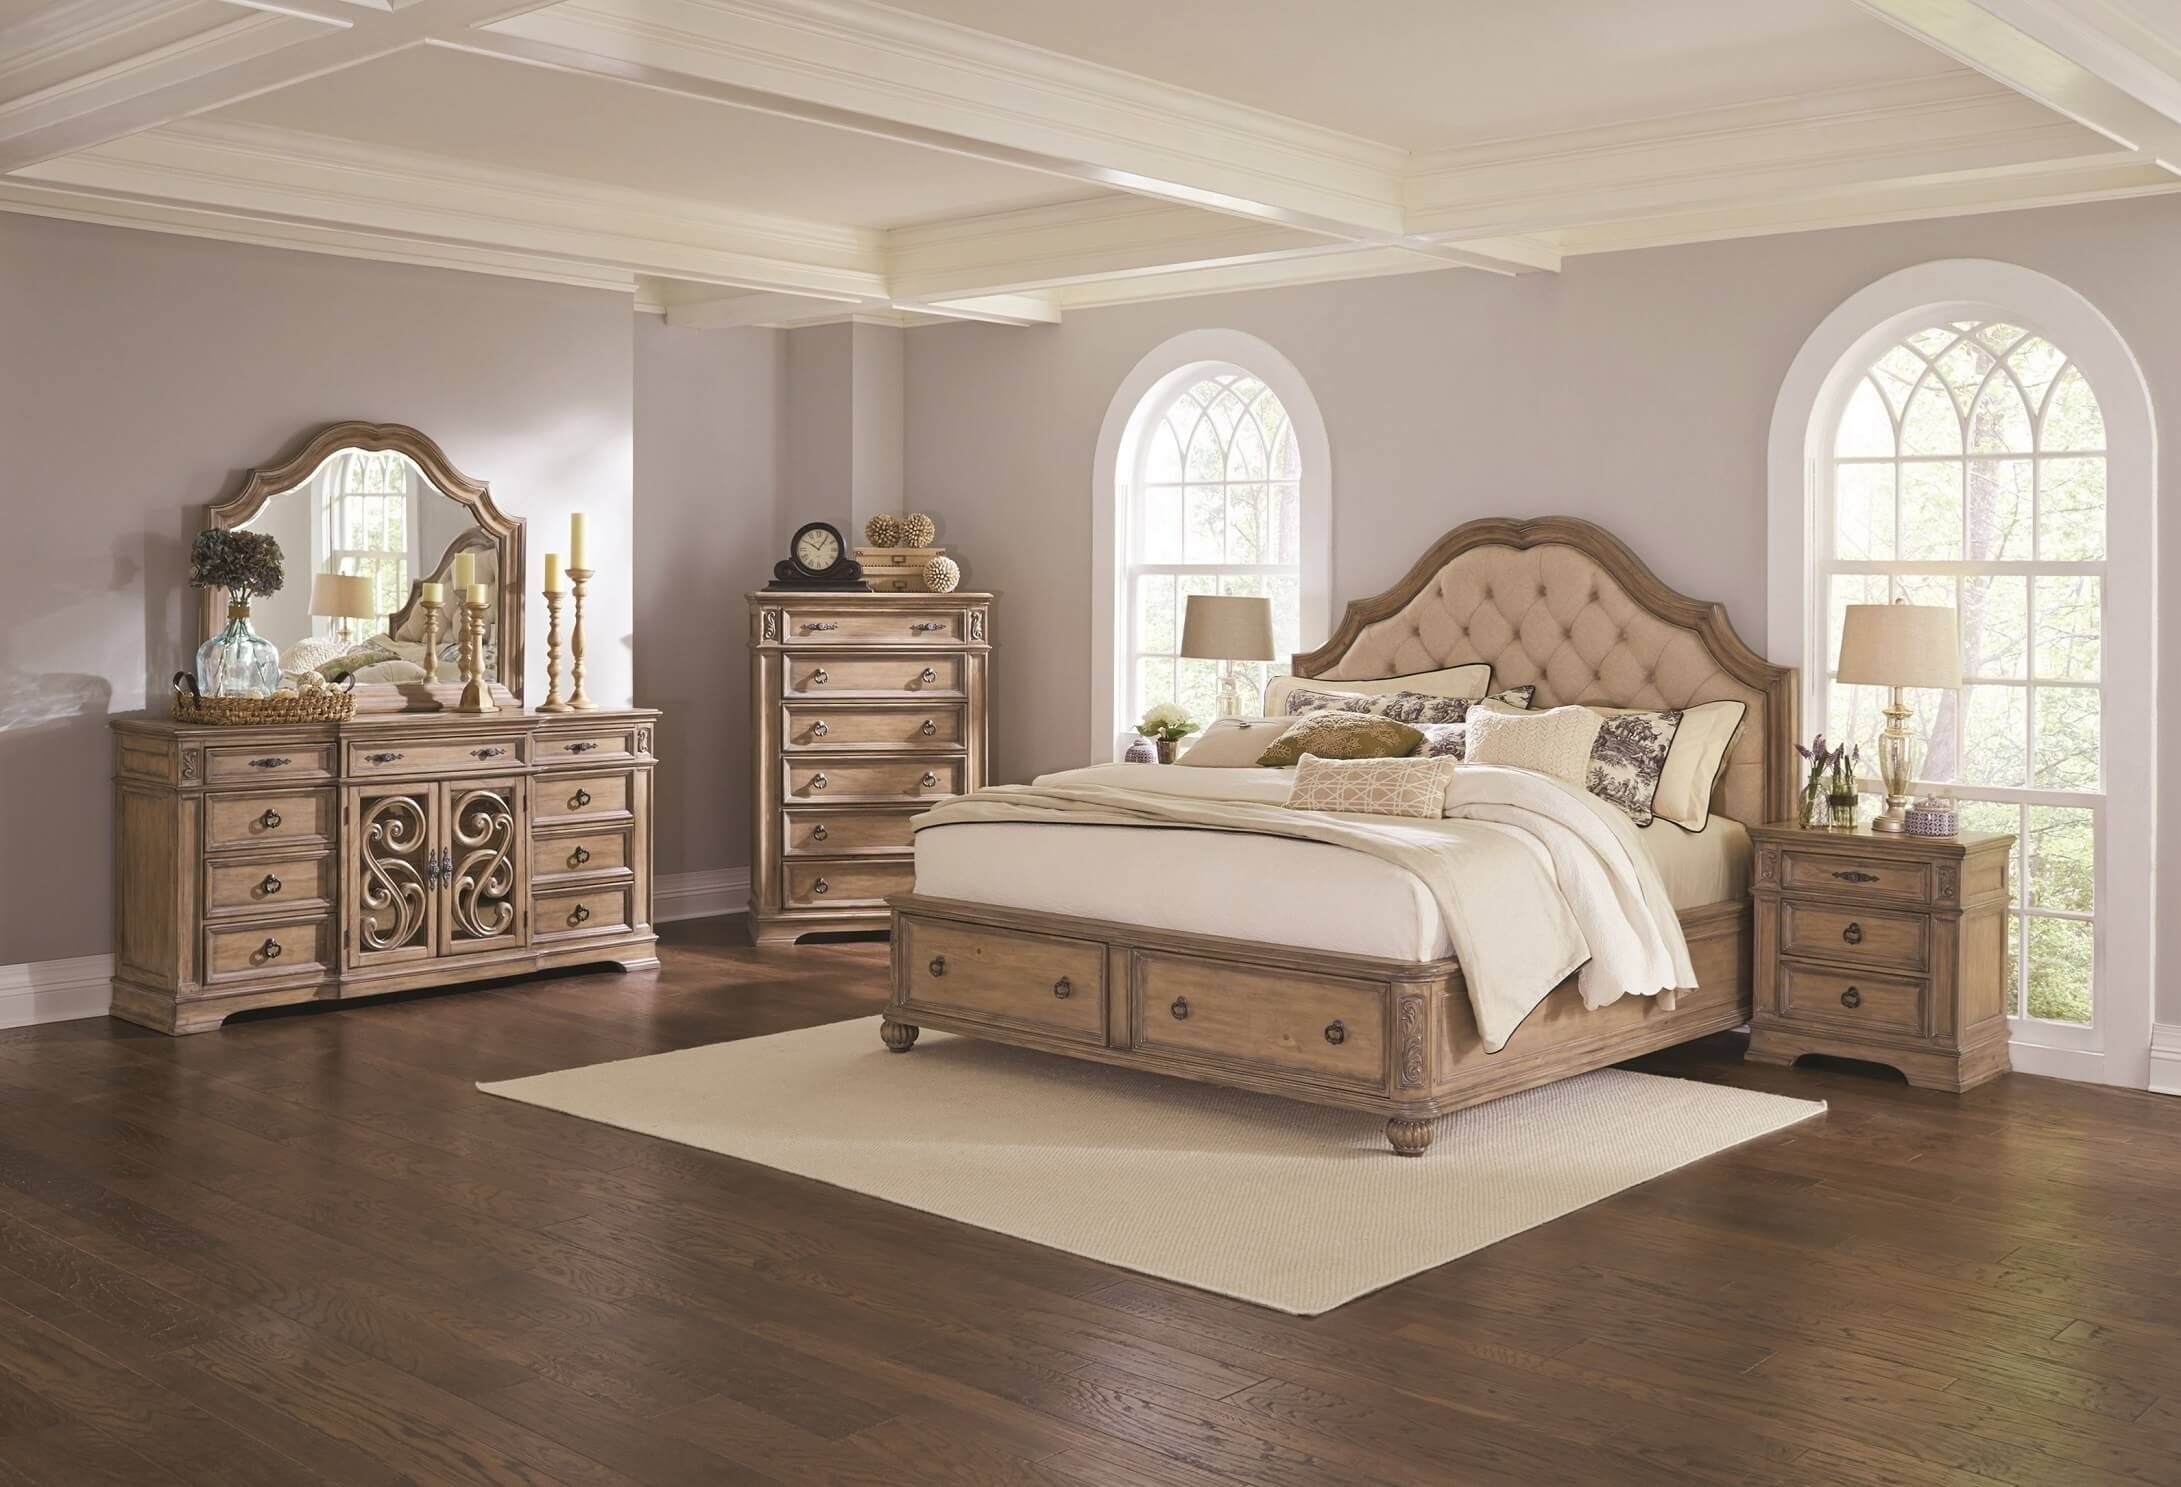 Ilana Collection 205070 Bedroom Set. Ilana Collection 205070 Traditional Upholstered Storage Bedroom